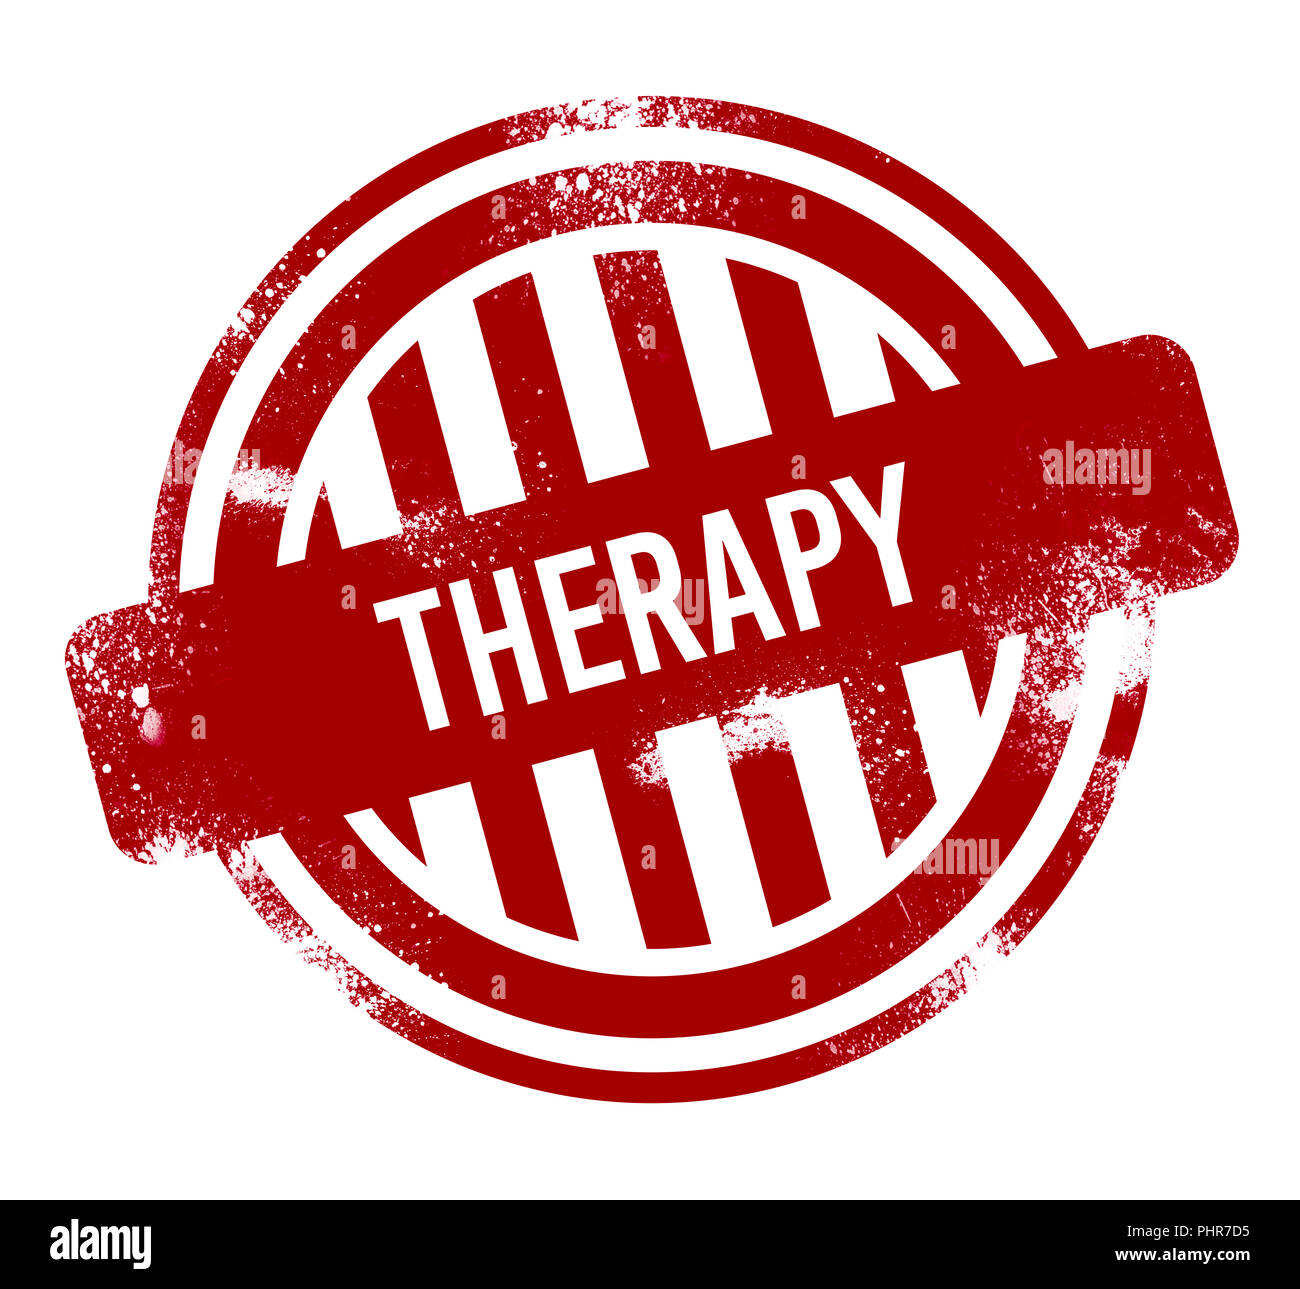 therapy - red grunge button, stamp - Stock Image